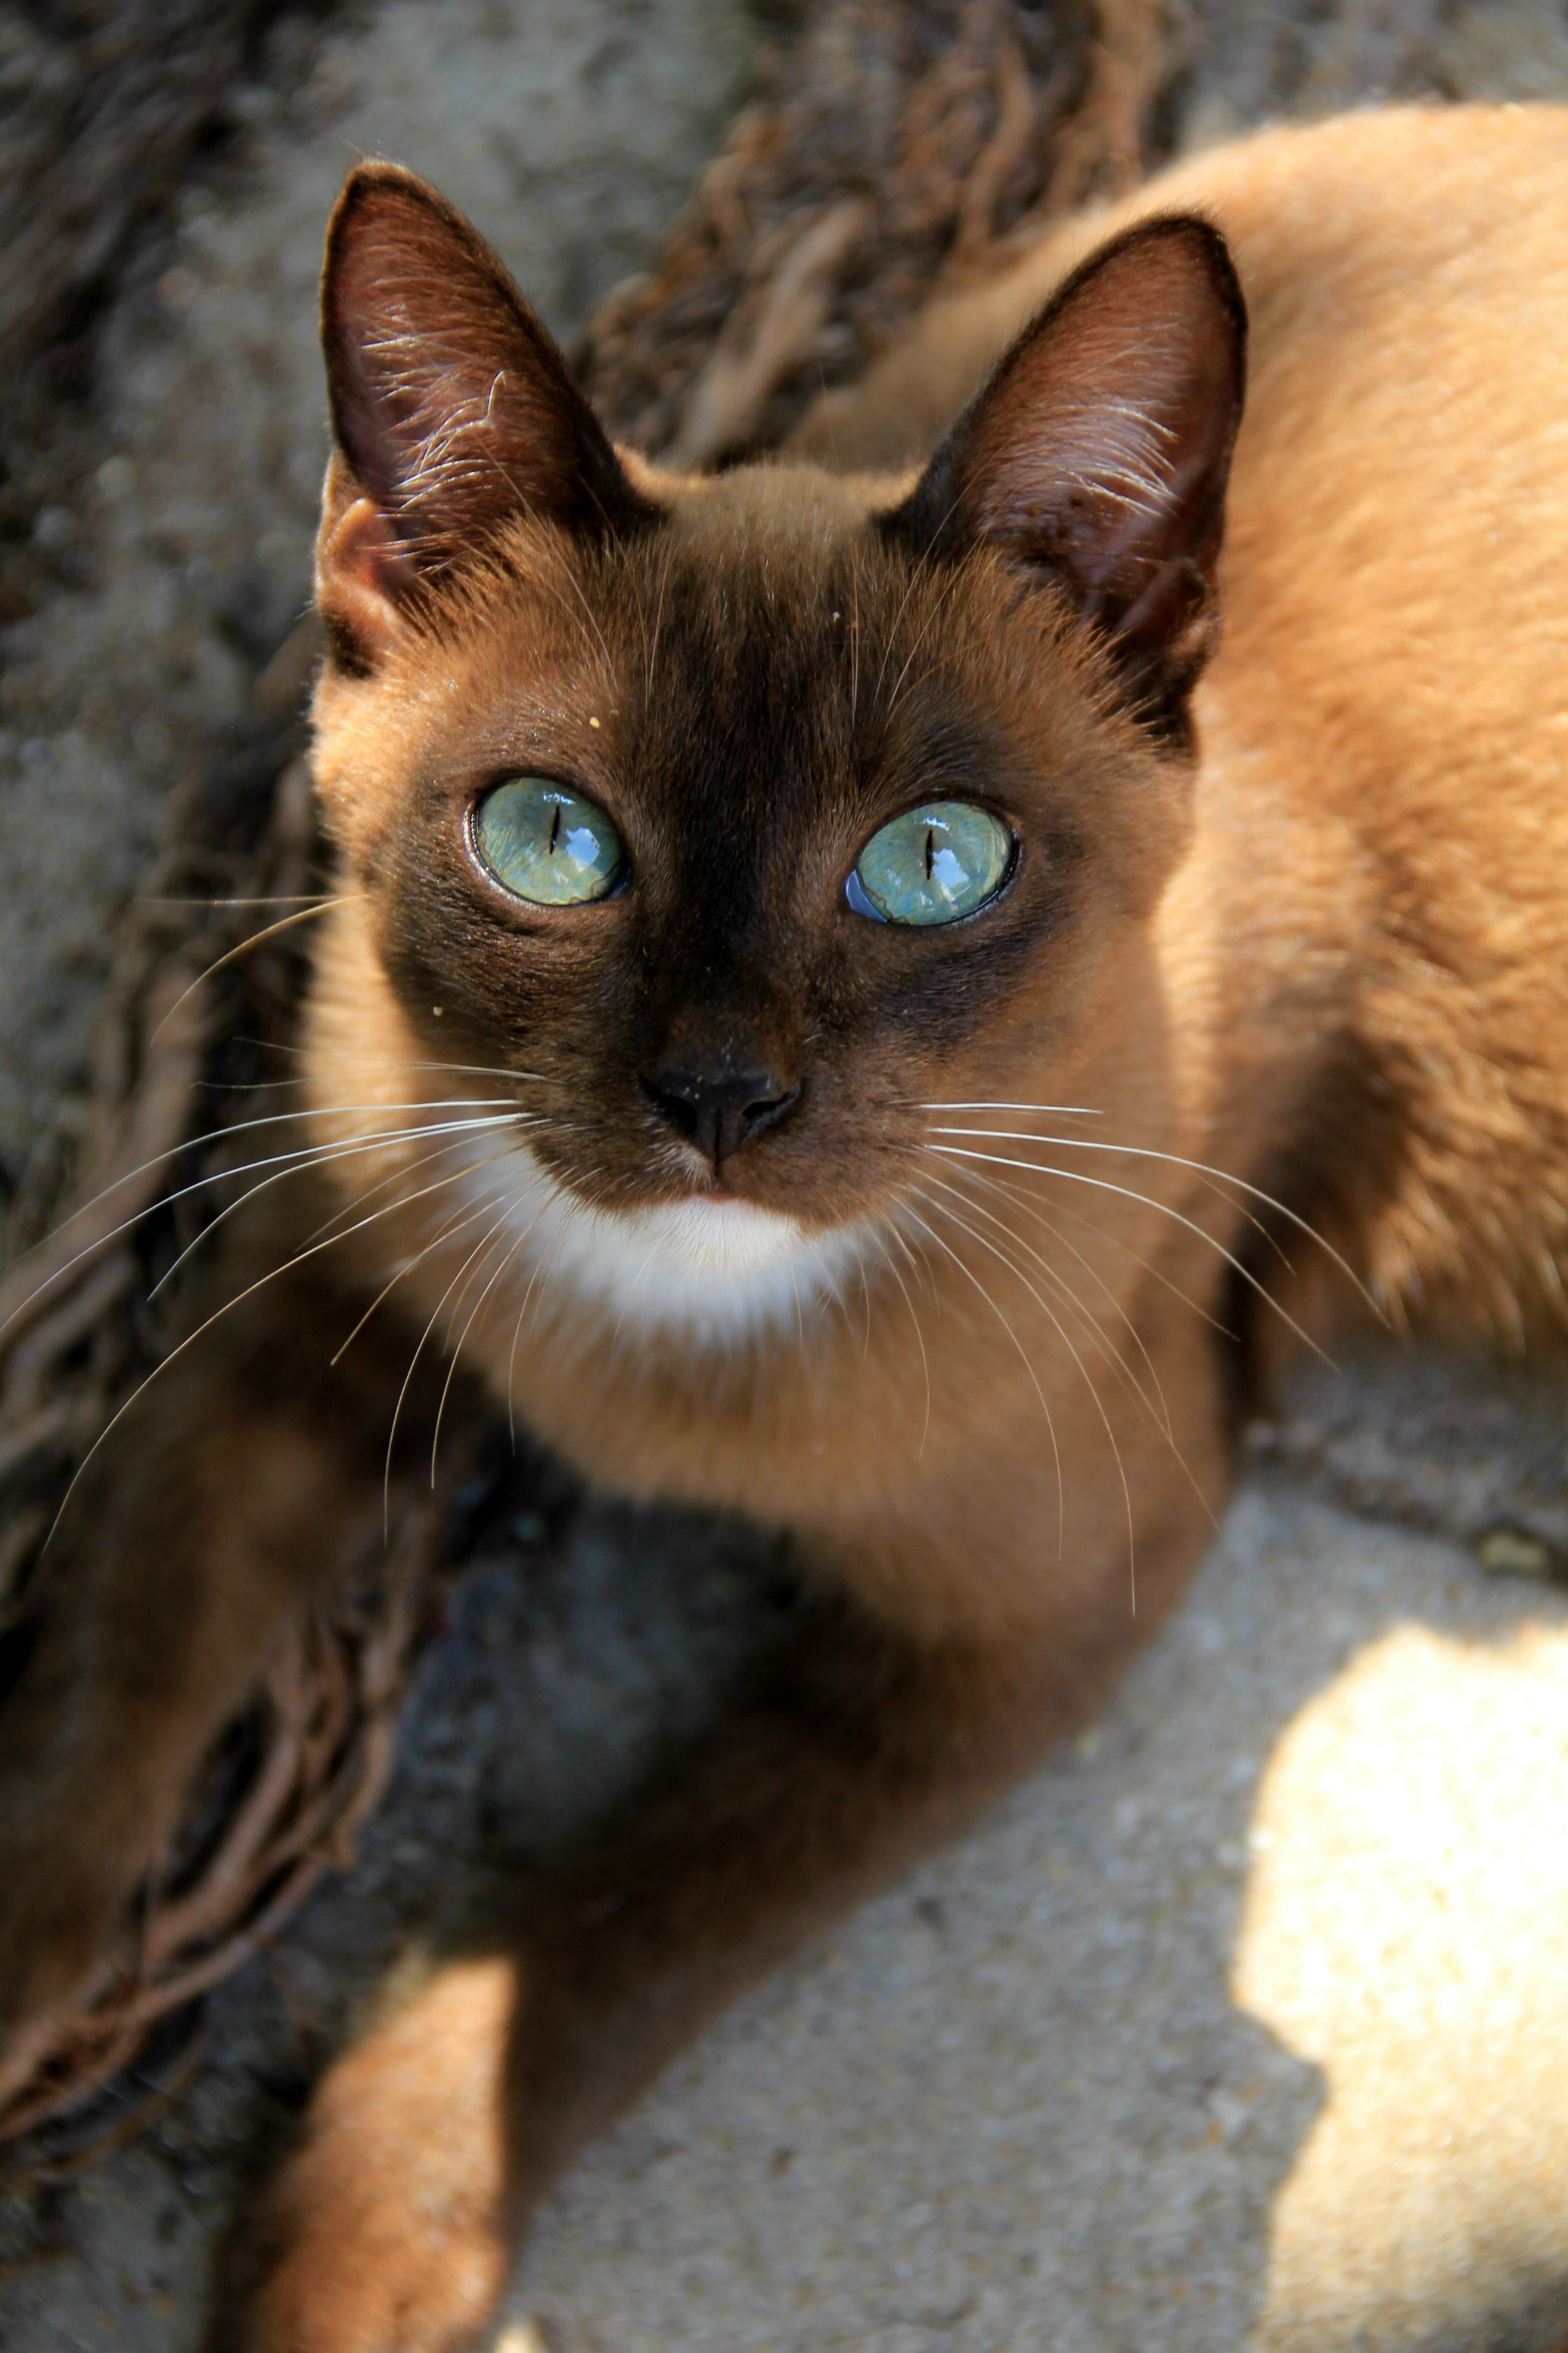 Cats From Thailand Include Siamese Korat Burmese Tonkinese And Another Great Breed Not Yet Recognized In The West The Khao Best Cat Breeds Cute Animals